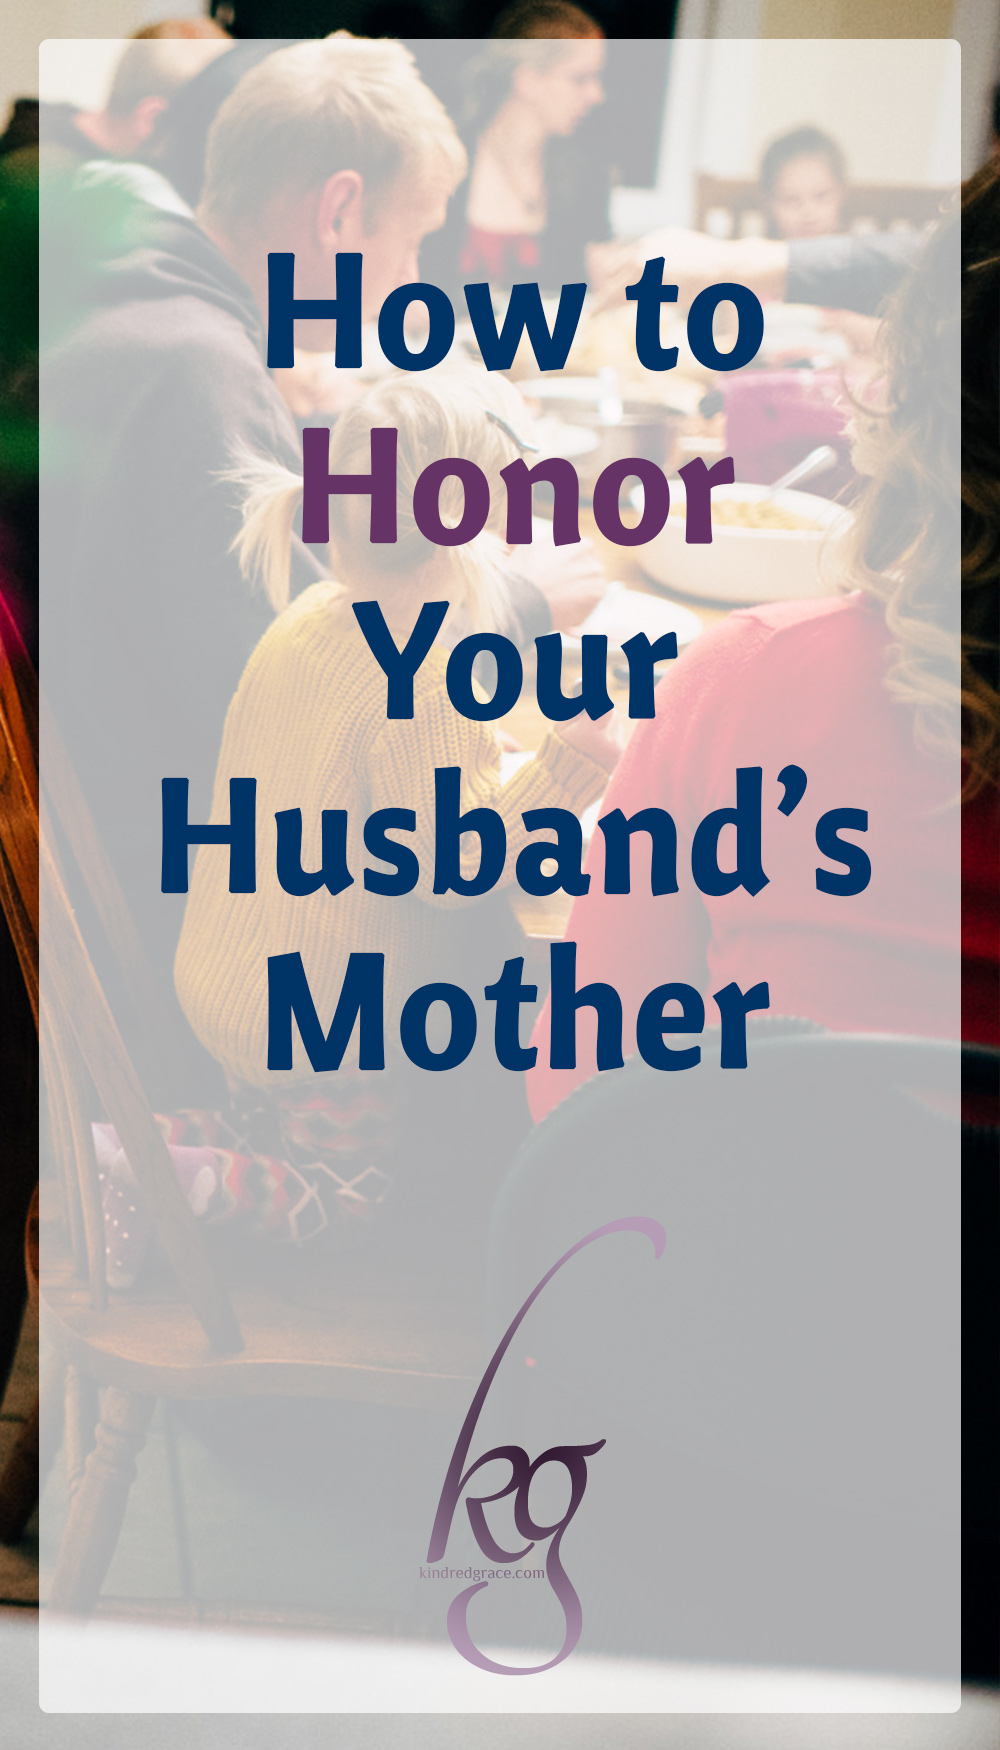 How to Honor Your Husband's Mother via @KindredGrace